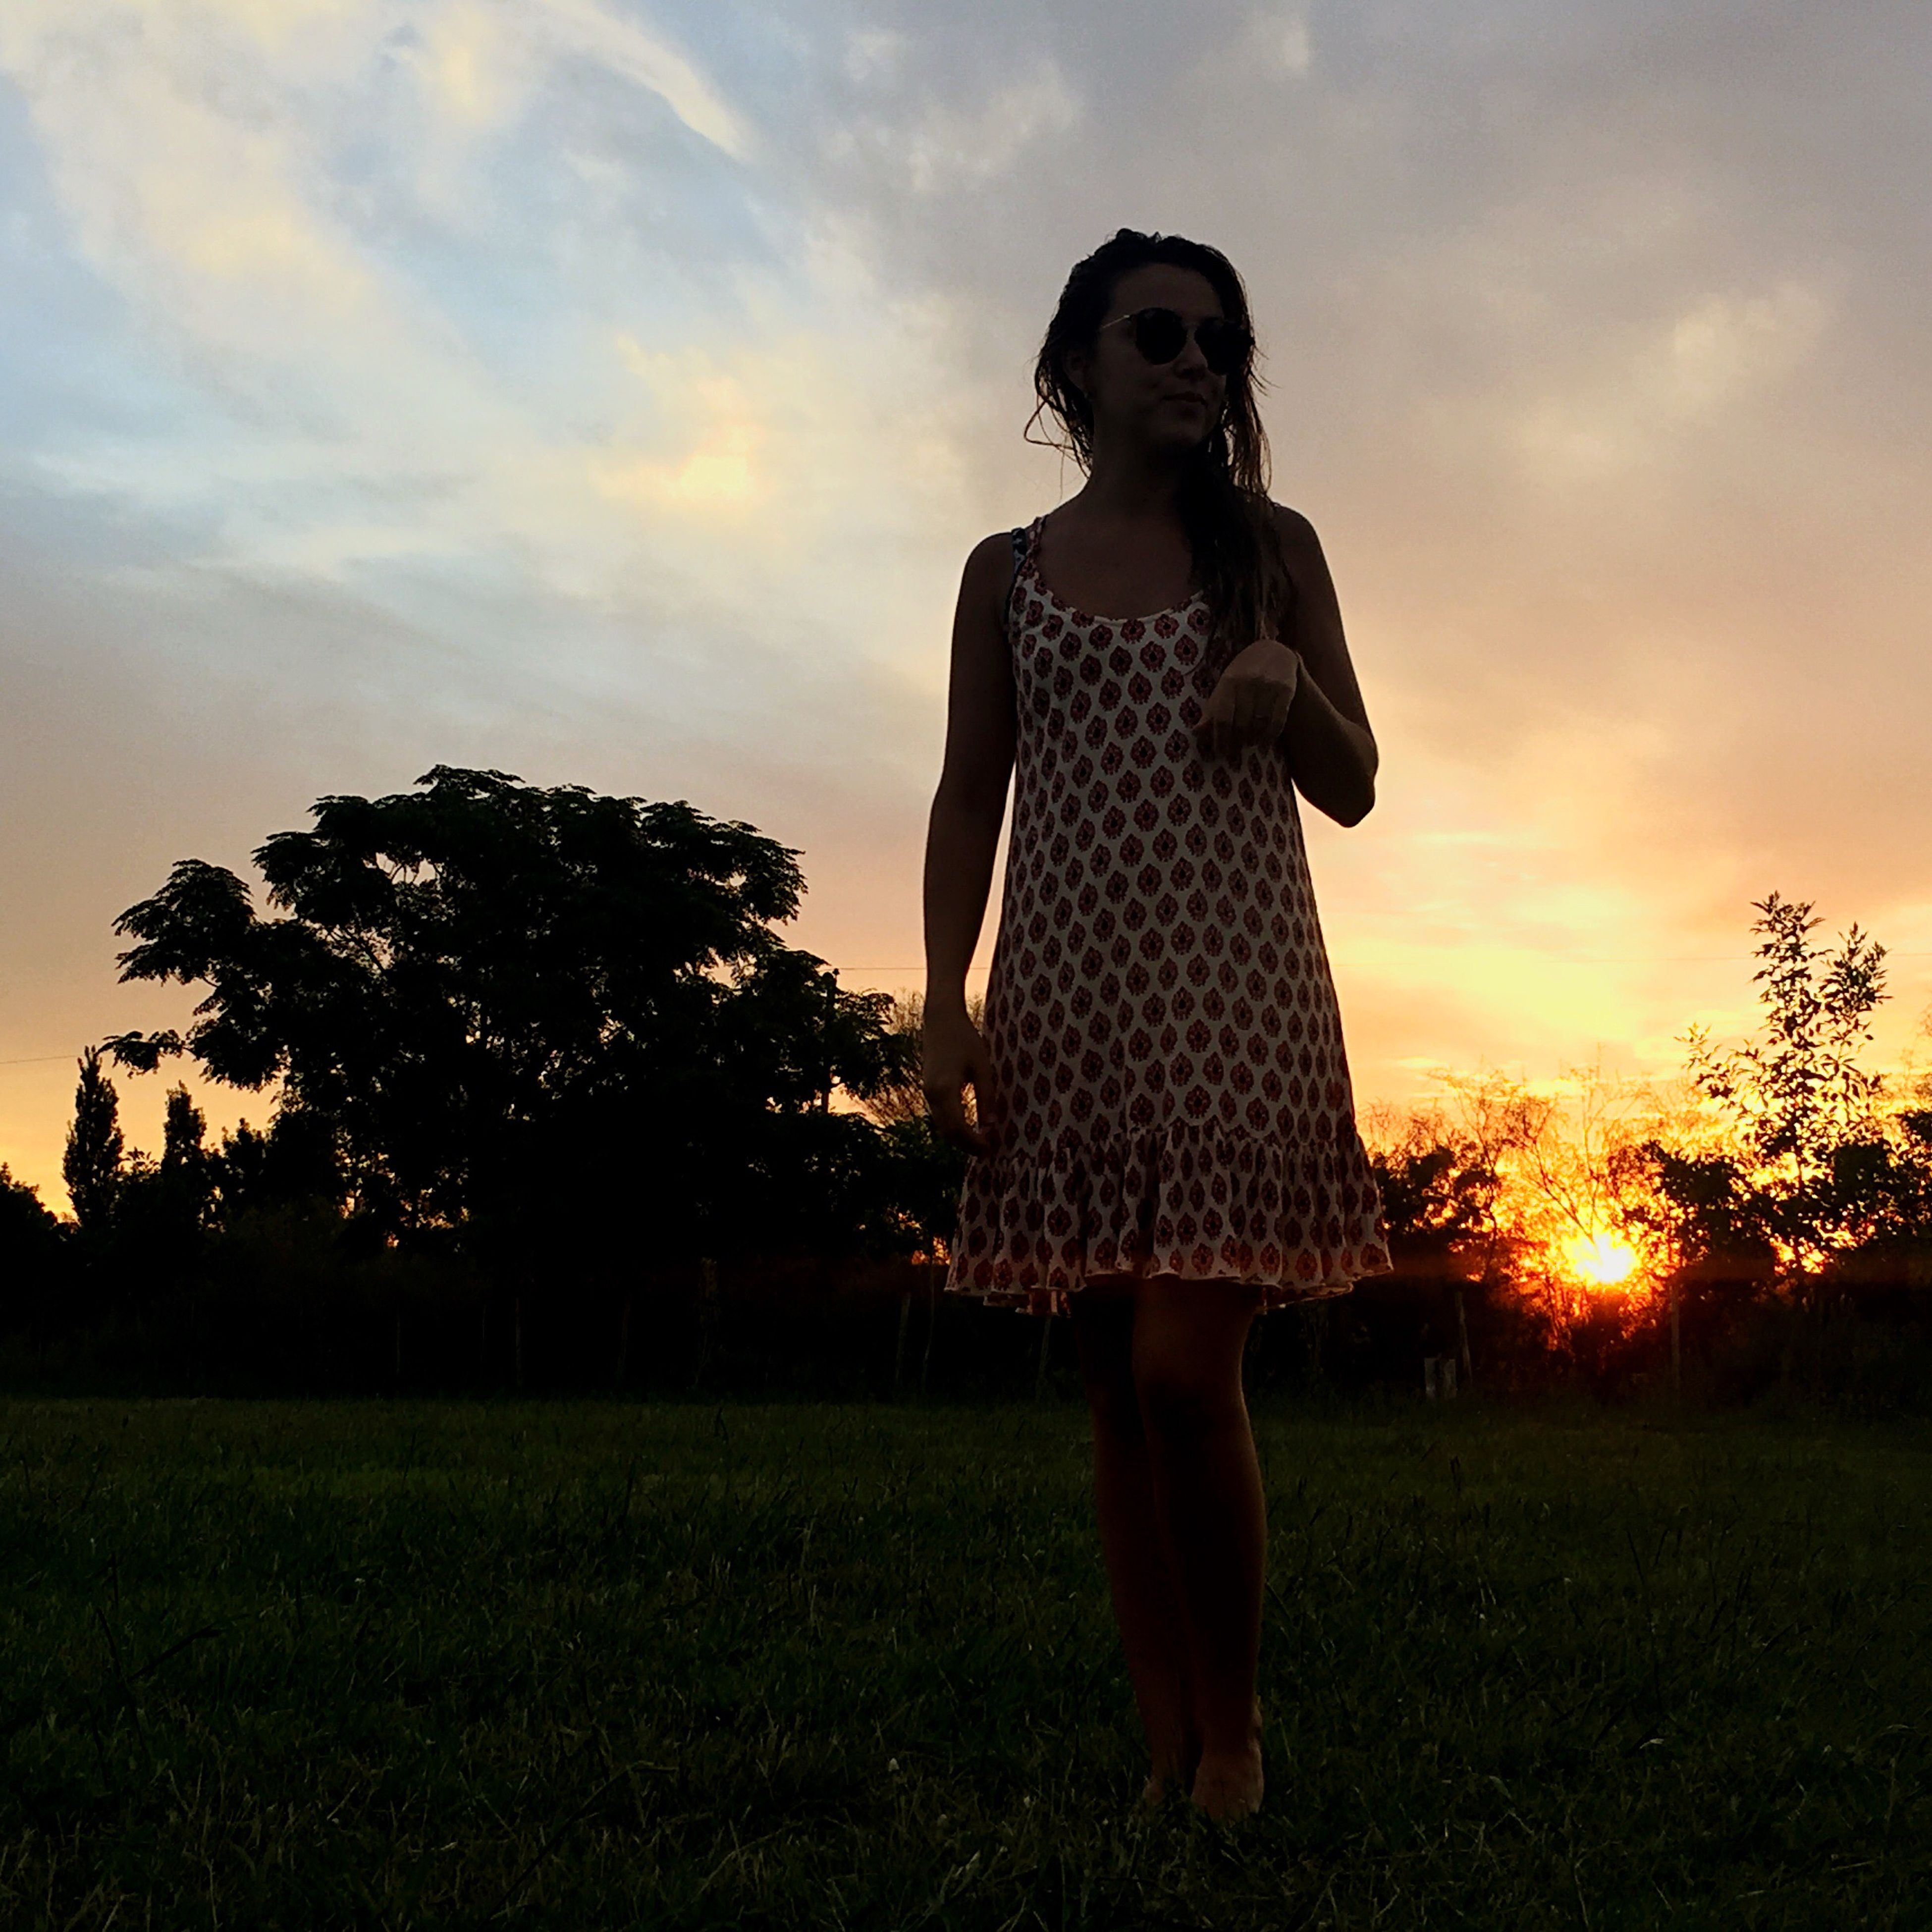 sunset, beauty, sky, fashion, grass, one person, young adult, outdoors, one young woman only, field, people, one woman only, tree, adult, adults only, beauty in nature, nature, day